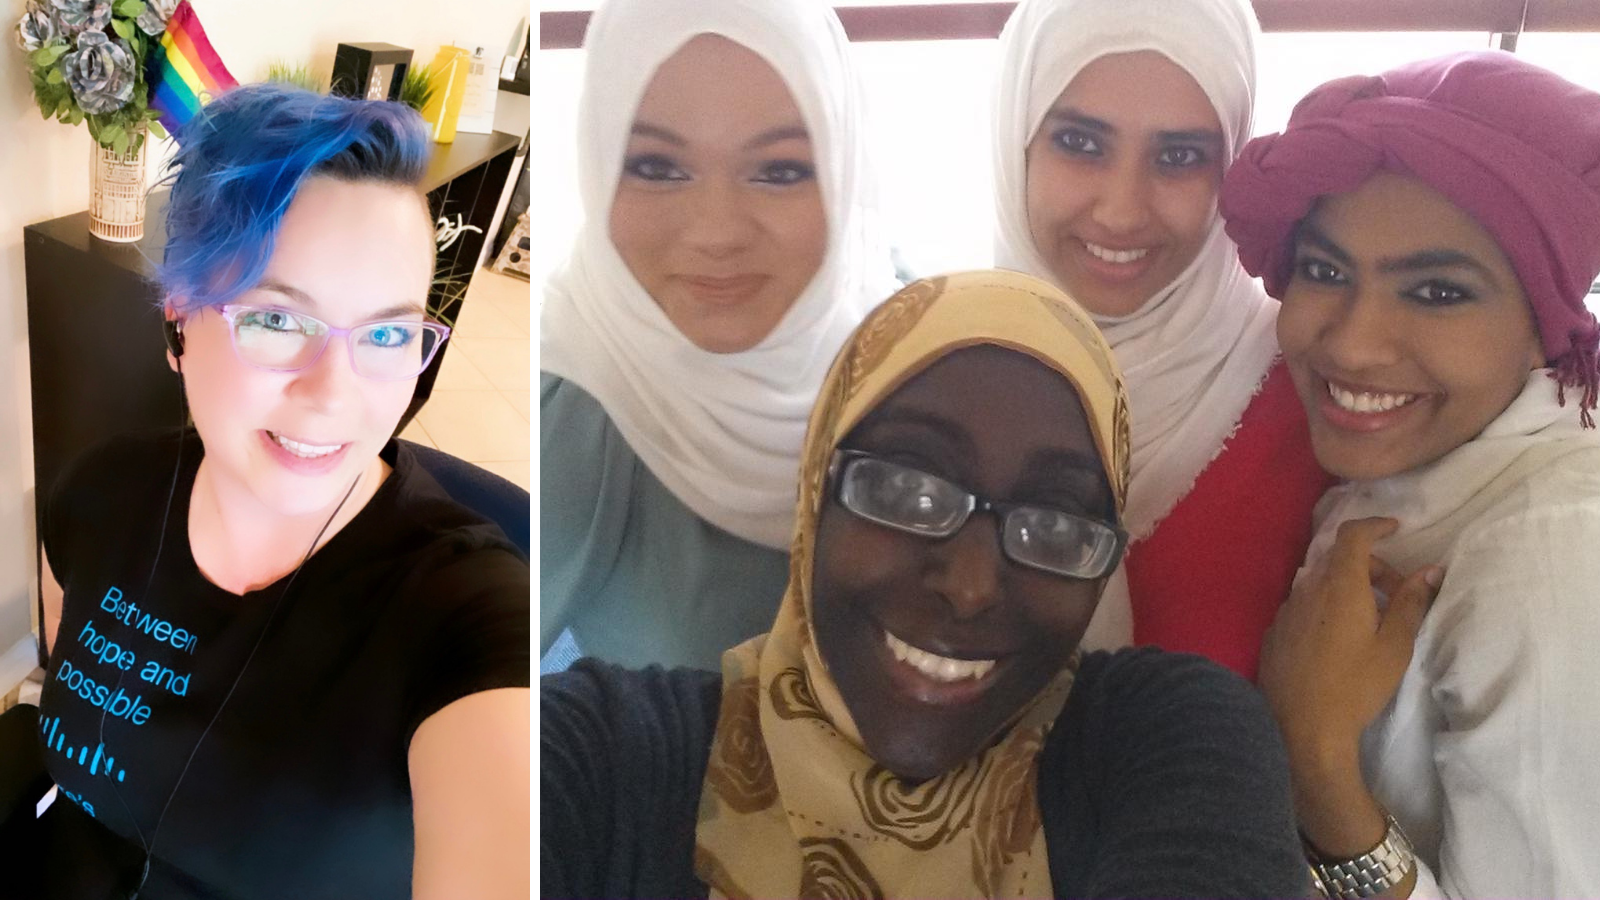 Collage of woman with purple hair and Pride flag and four women in Hijabs.